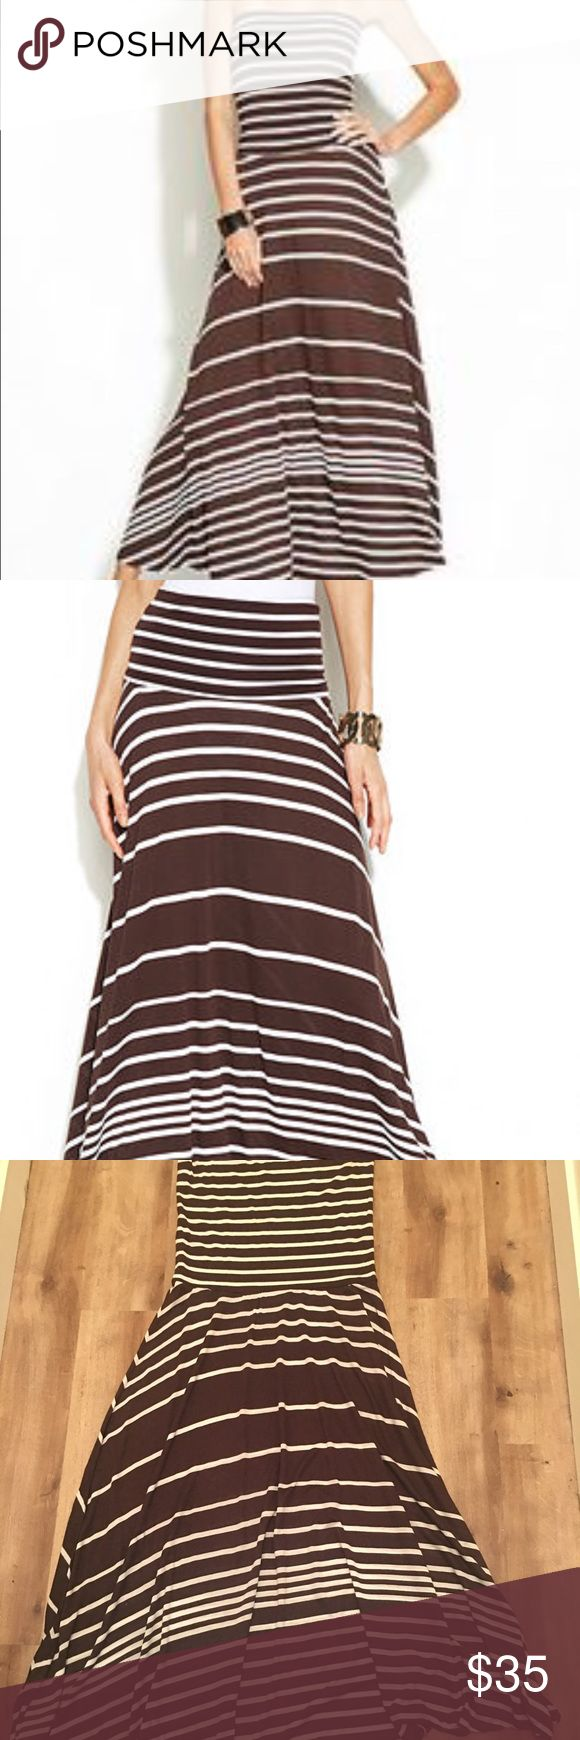 INC dress/skirt INC convertible Midi dress Maci skirt INC International Concepts Dresses